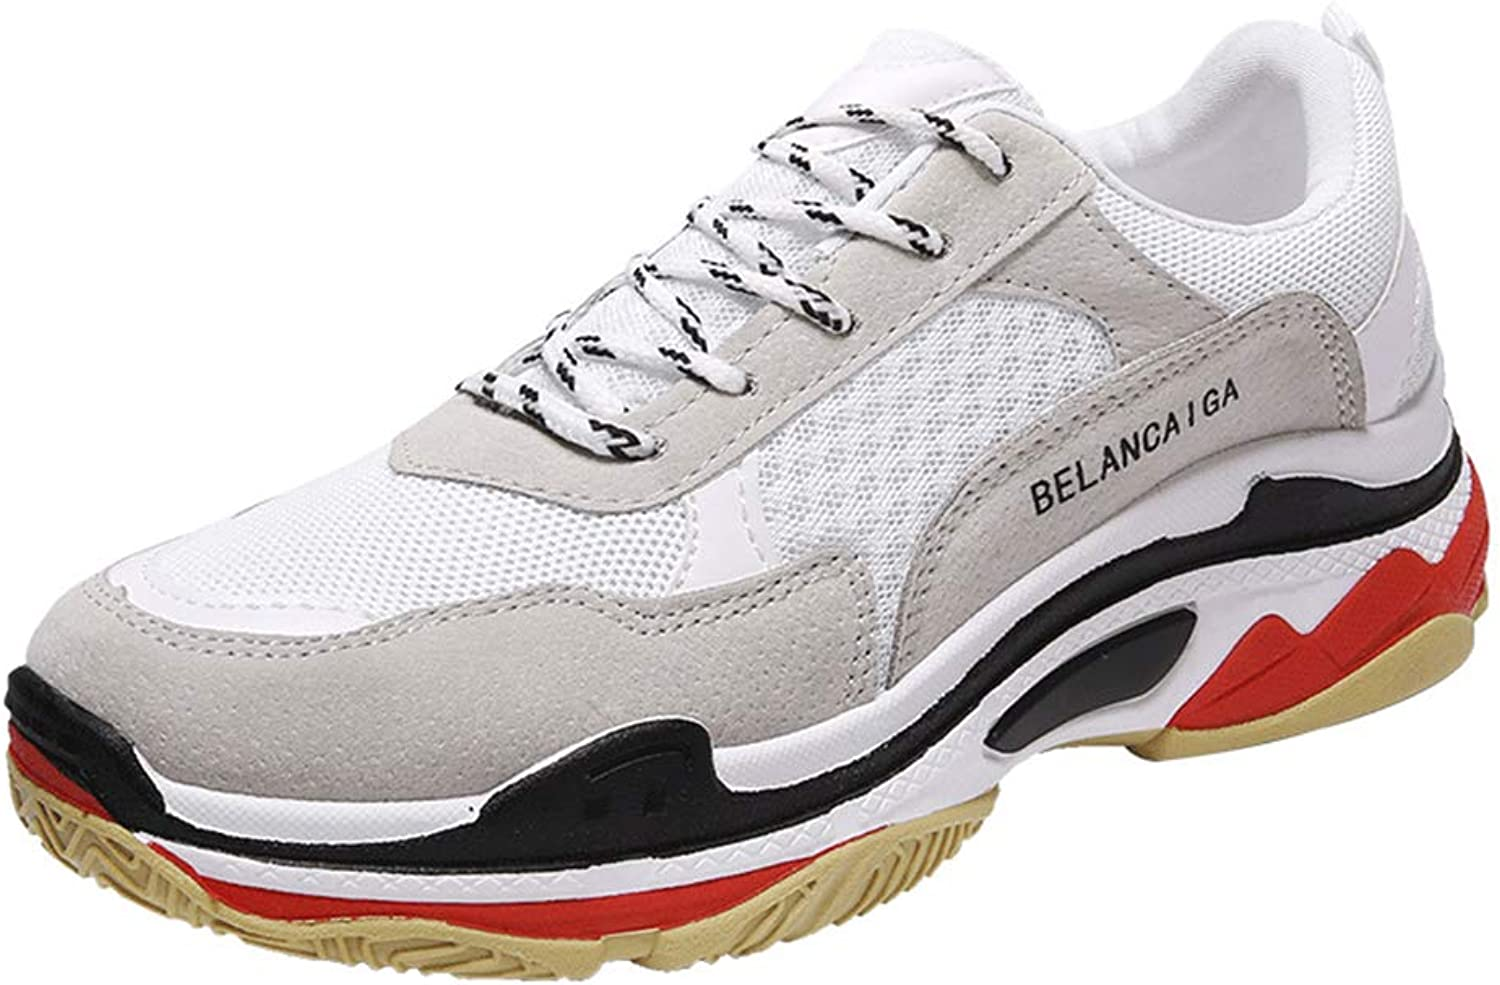 Cdon Womens Sneakers, Athletic Tennis Running shoes Comfortable Gym Sneakers